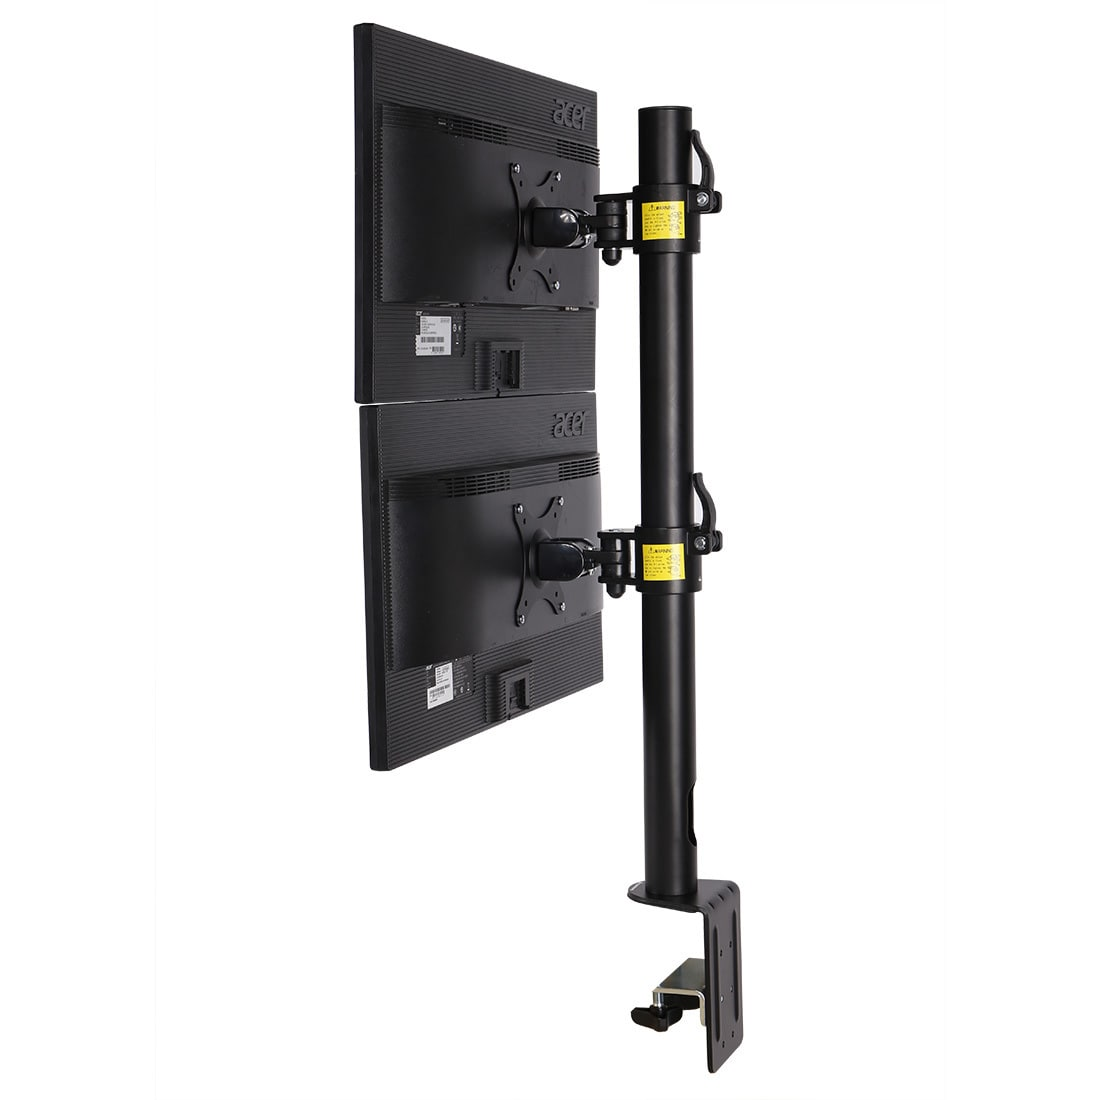 "FLEXIMOUNTS D1DV Full Motion Vertical Dual Desk Mounts Stand for 2 screens up to 27"" LCD Monitor"